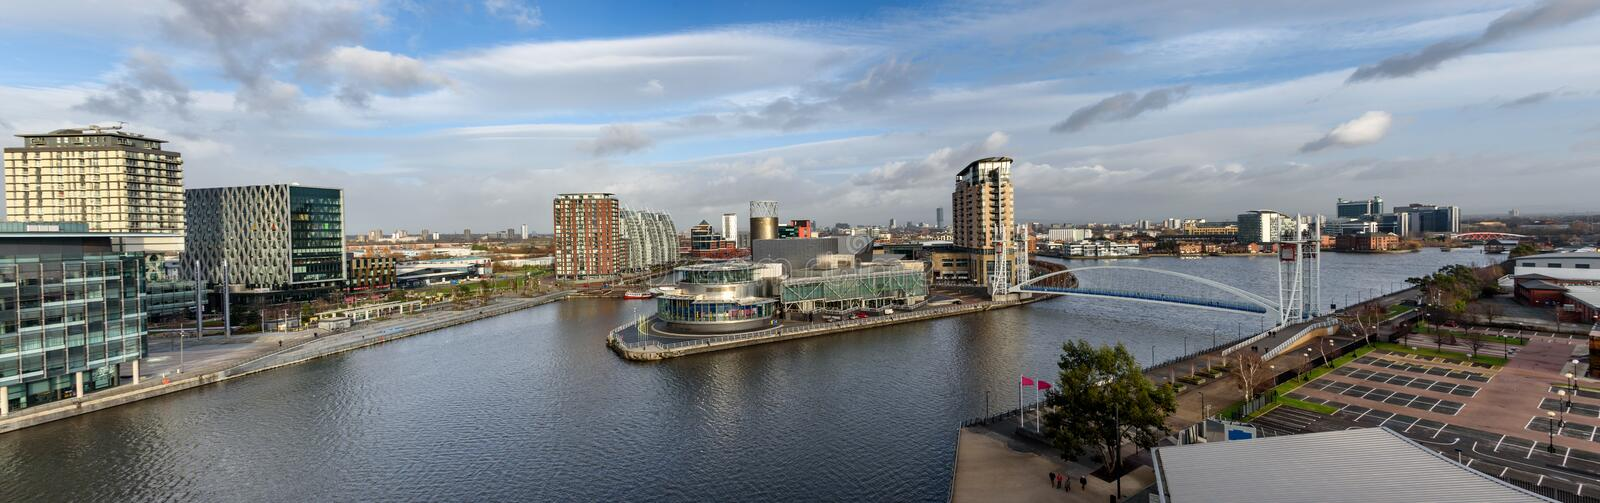 Panoramic view Salford Quay Manchester UK royalty free stock image